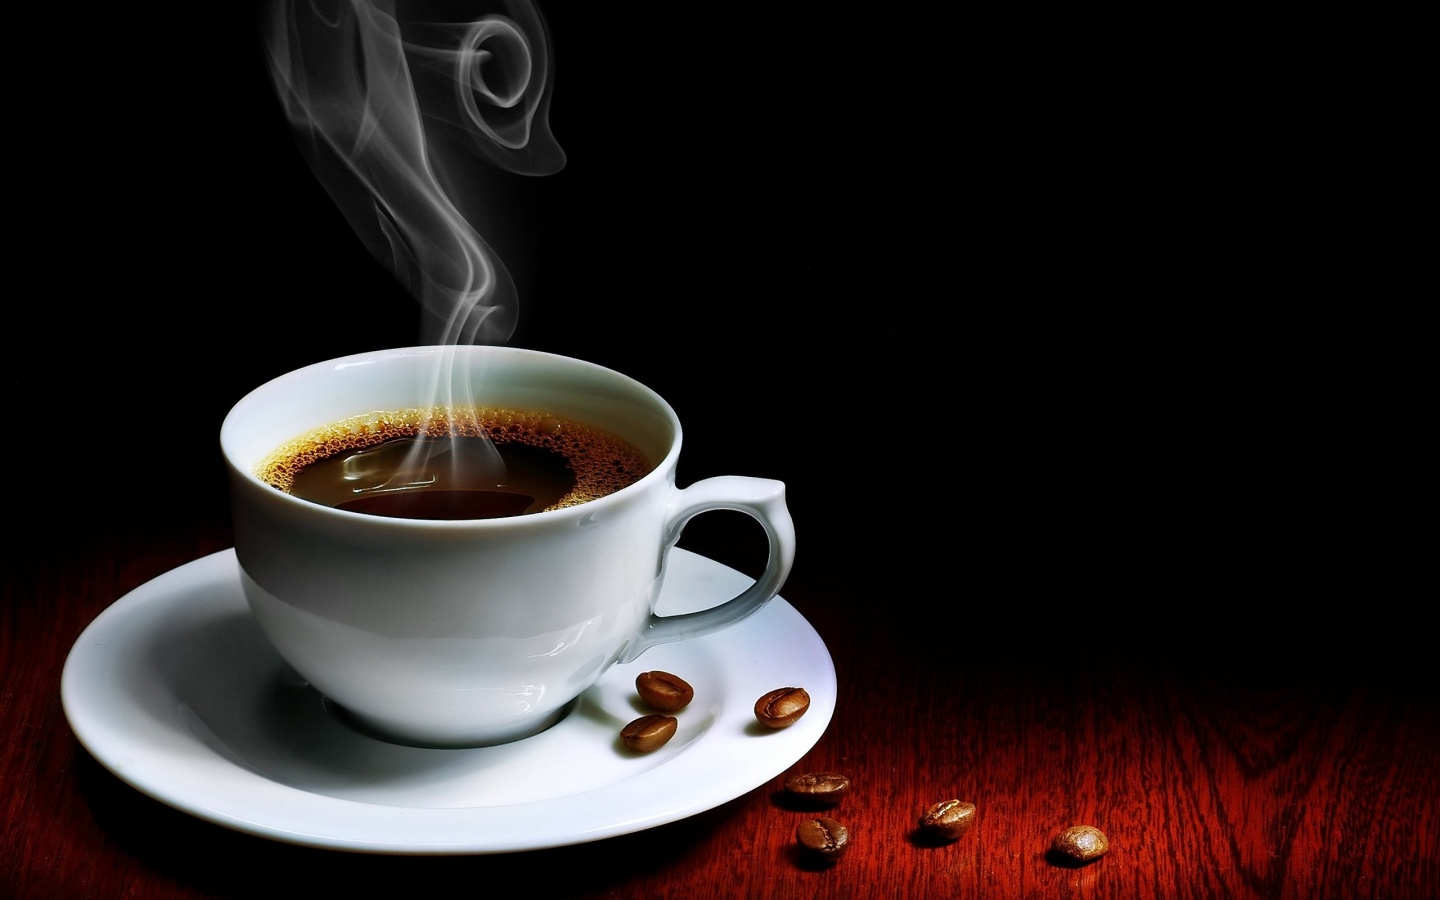 1440x900 Cup Of Coffee Desktop PC And Mac Wallpaper